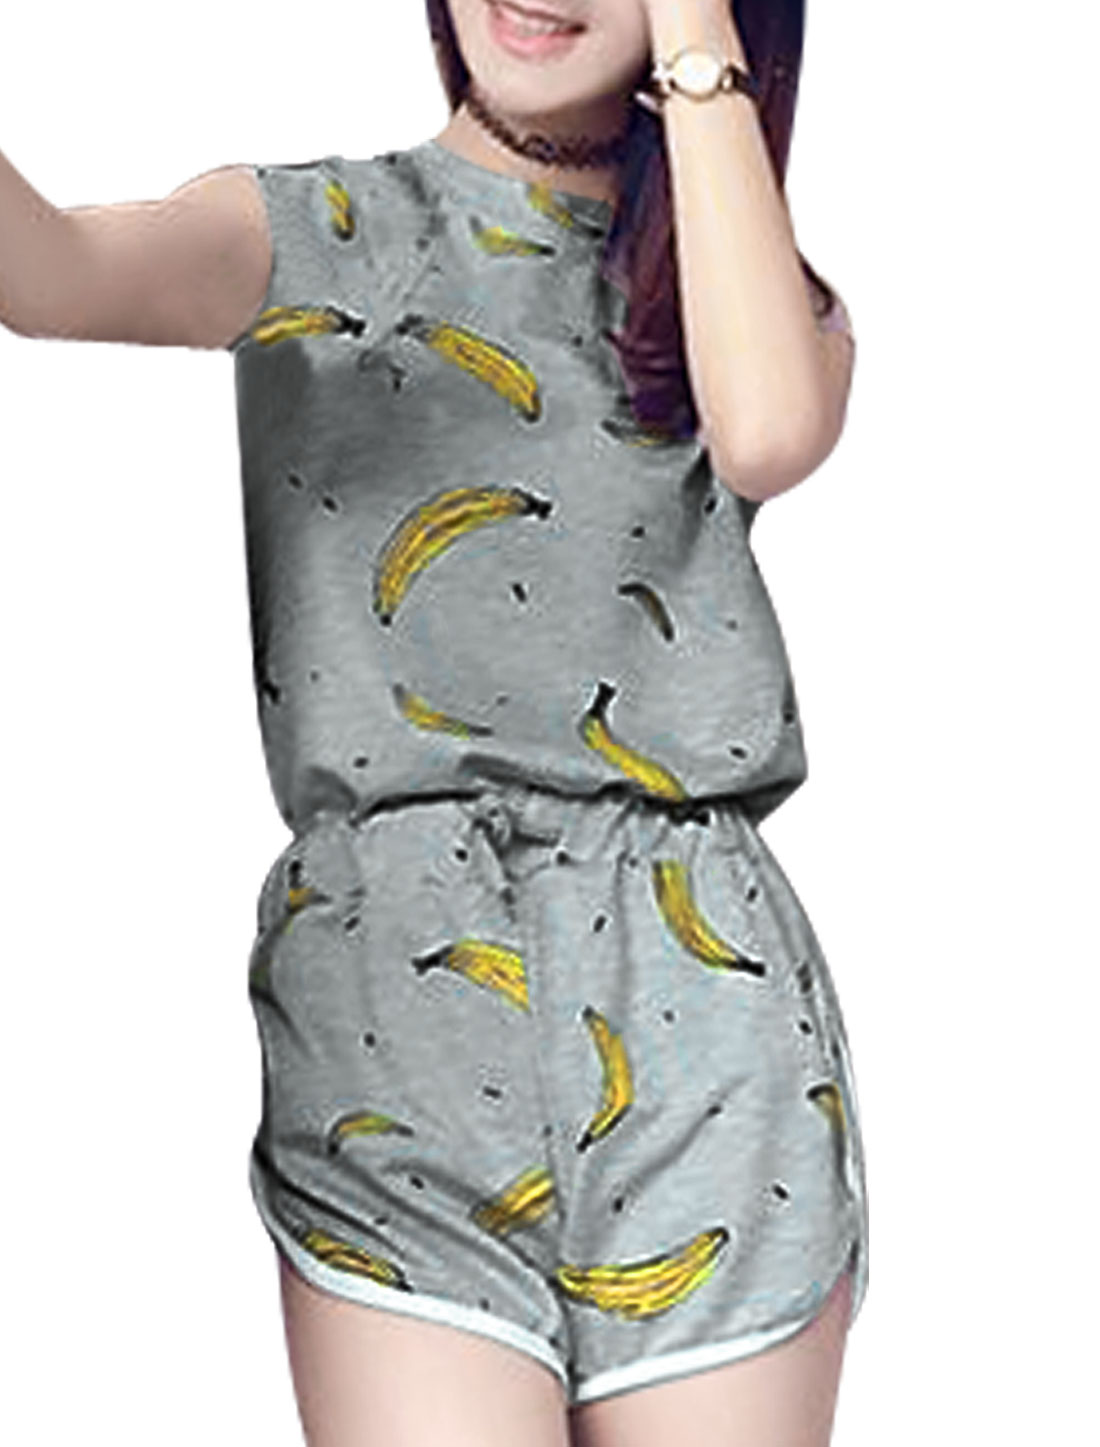 Ladies Banana Print Top w Drawstring Waist Shorts Sets Gray XS